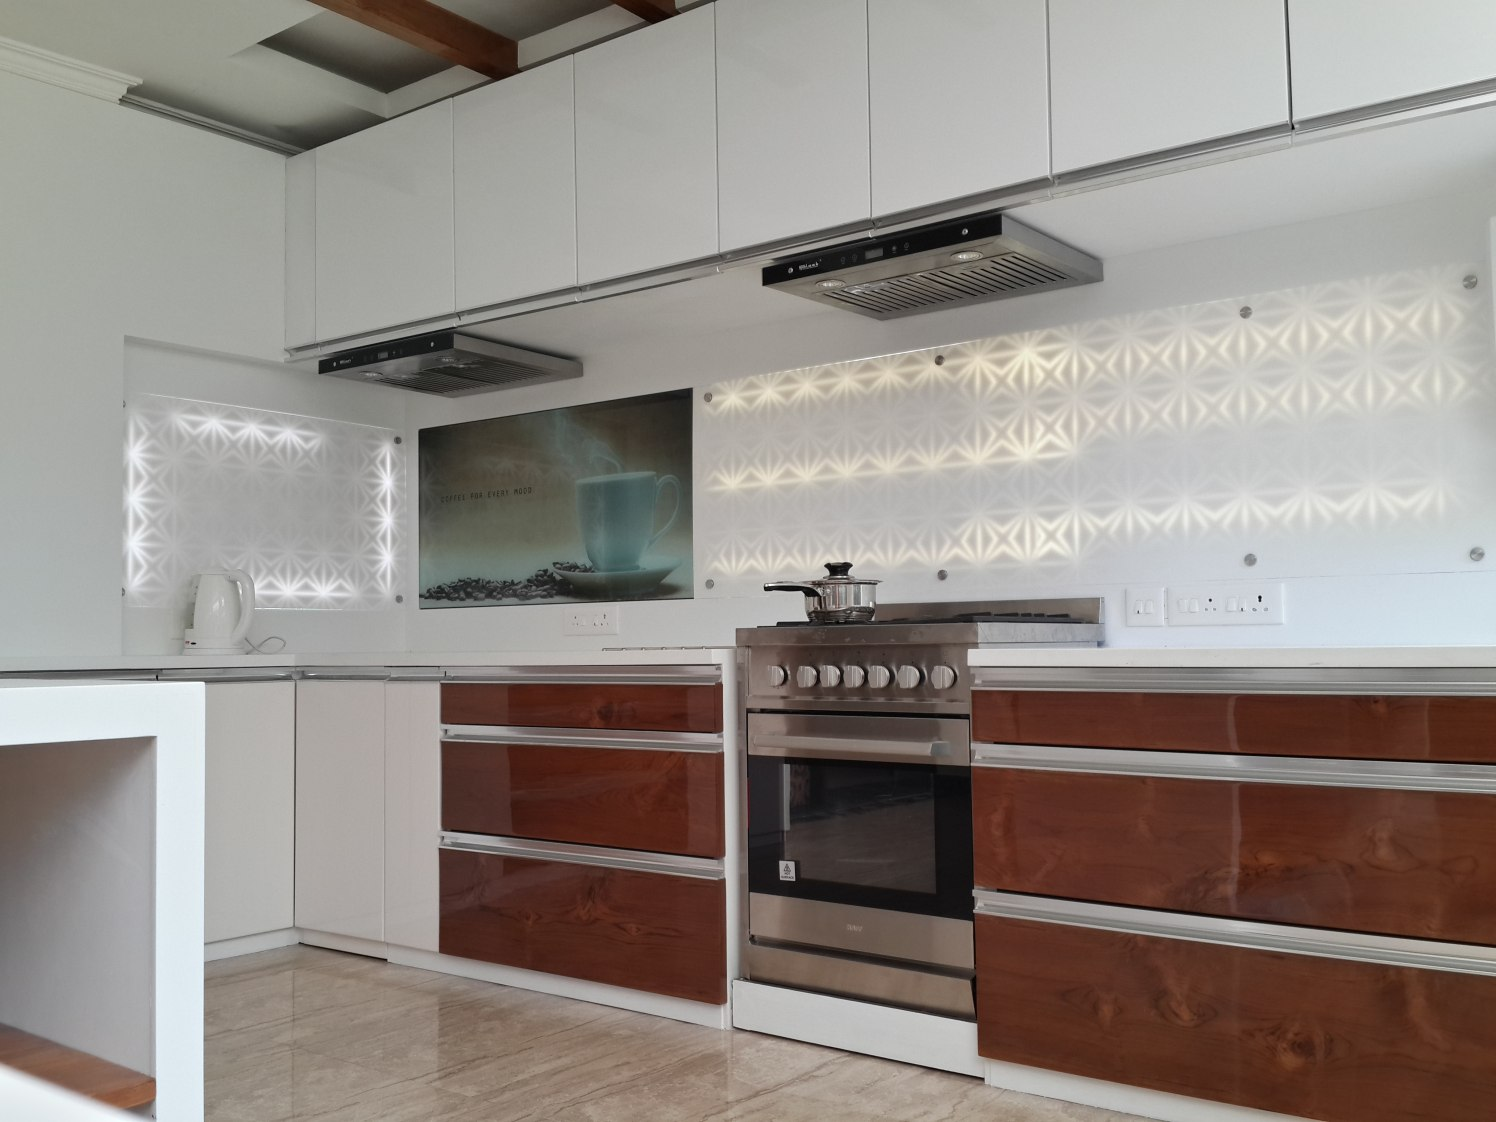 kitchen With Pale Shade Modular Cabinets by Prashant Ghosh Modular-kitchen Modern | Interior Design Photos & Ideas